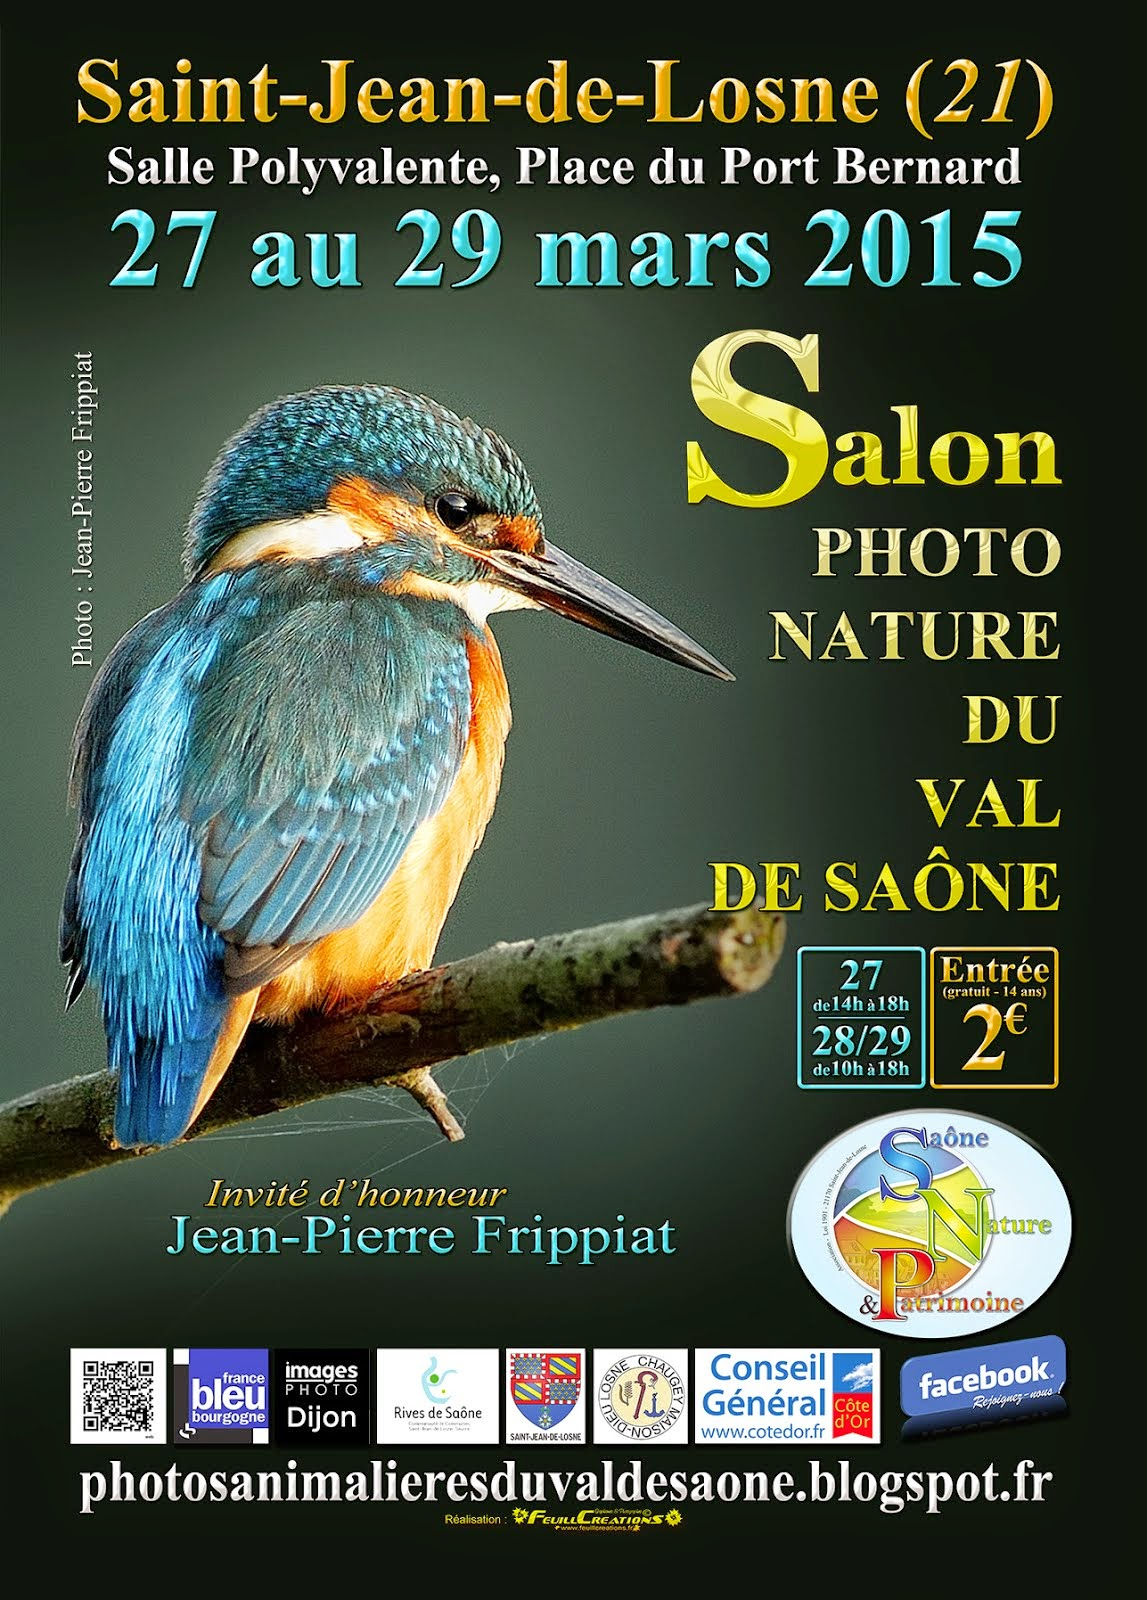 Salon Photo Nature du Val de Saône